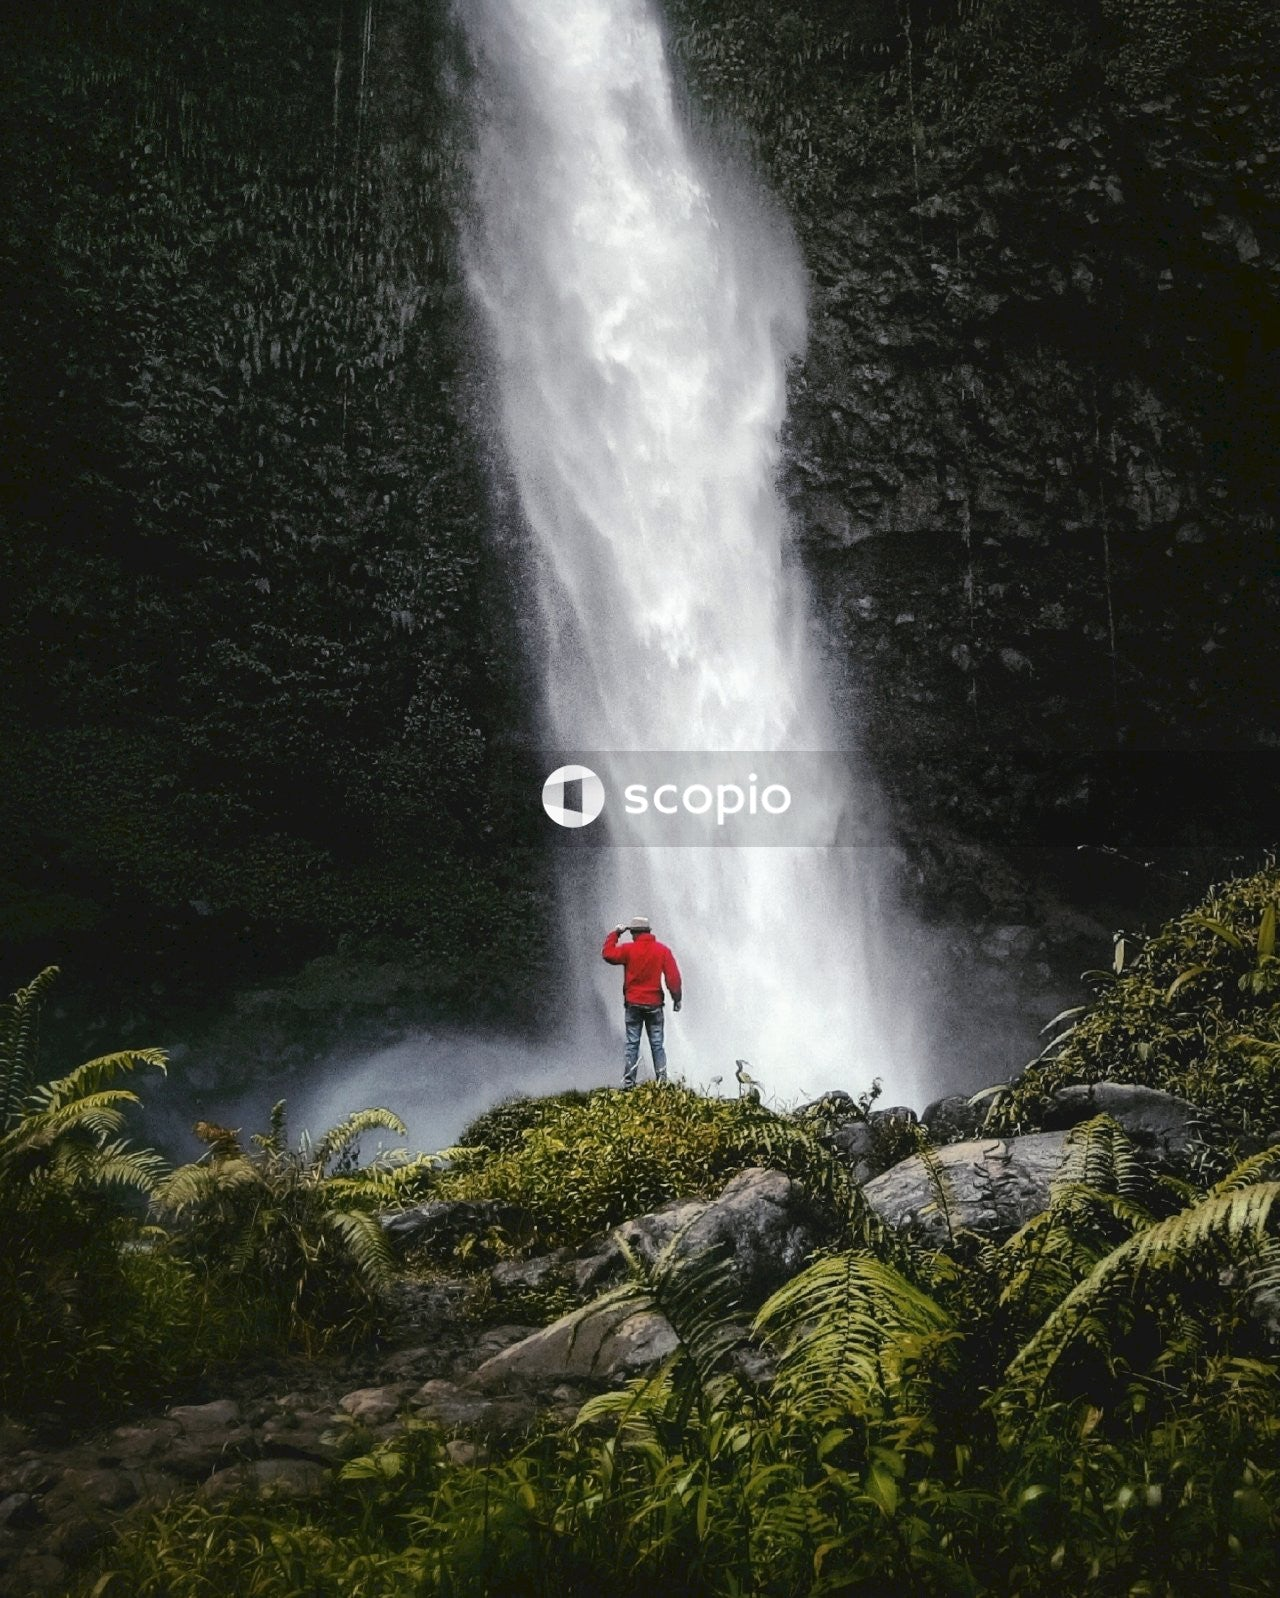 Person in red jacket standing on rock near waterfalls